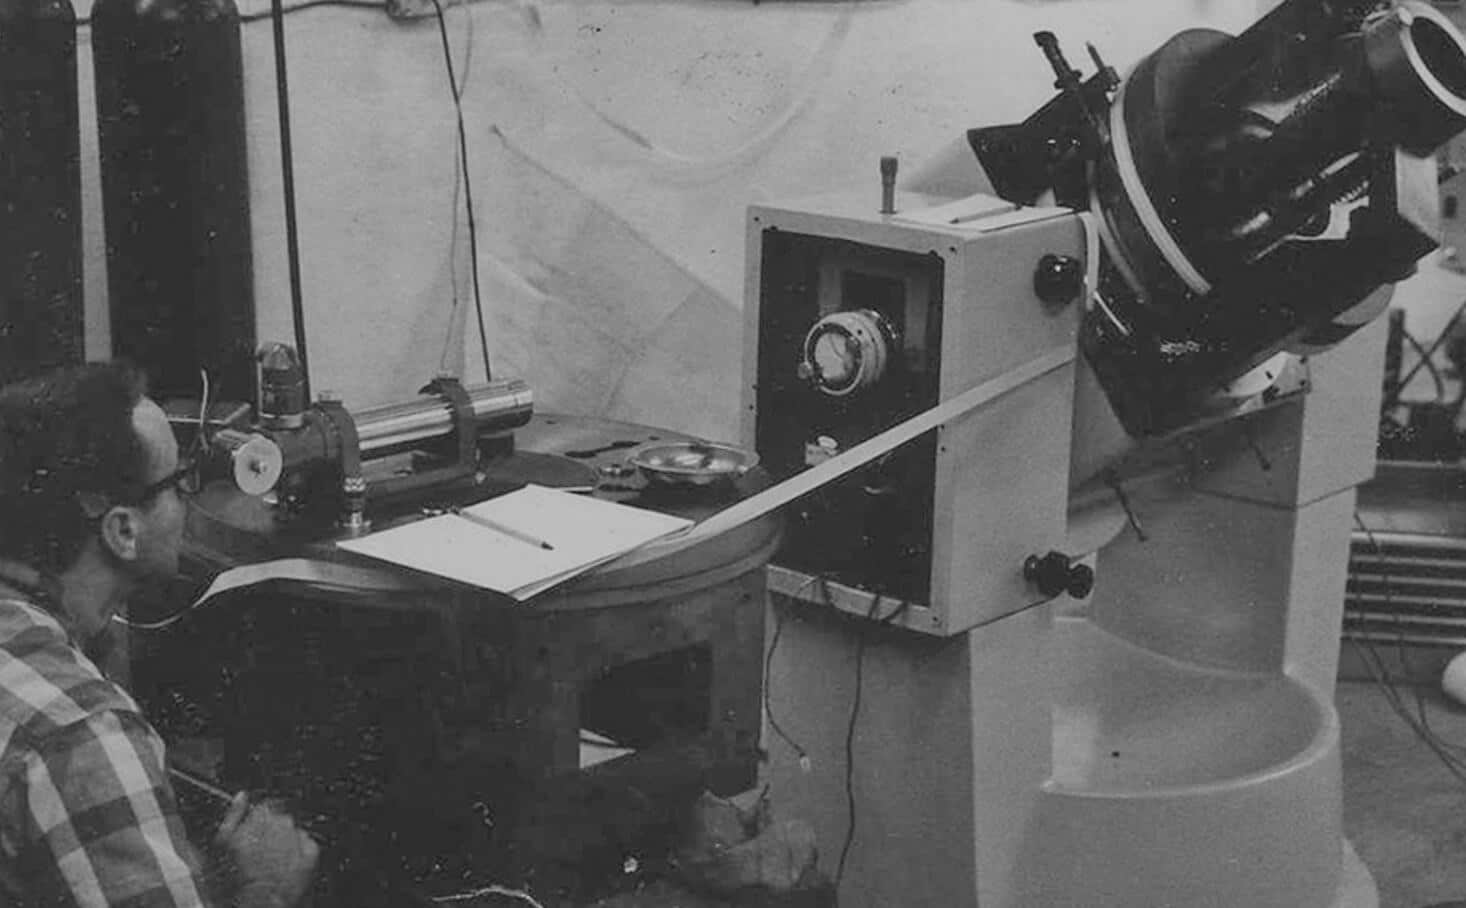 Founder Stephen J. Botos using an autocollimator to measure a system's performance, pre-Aerotech.